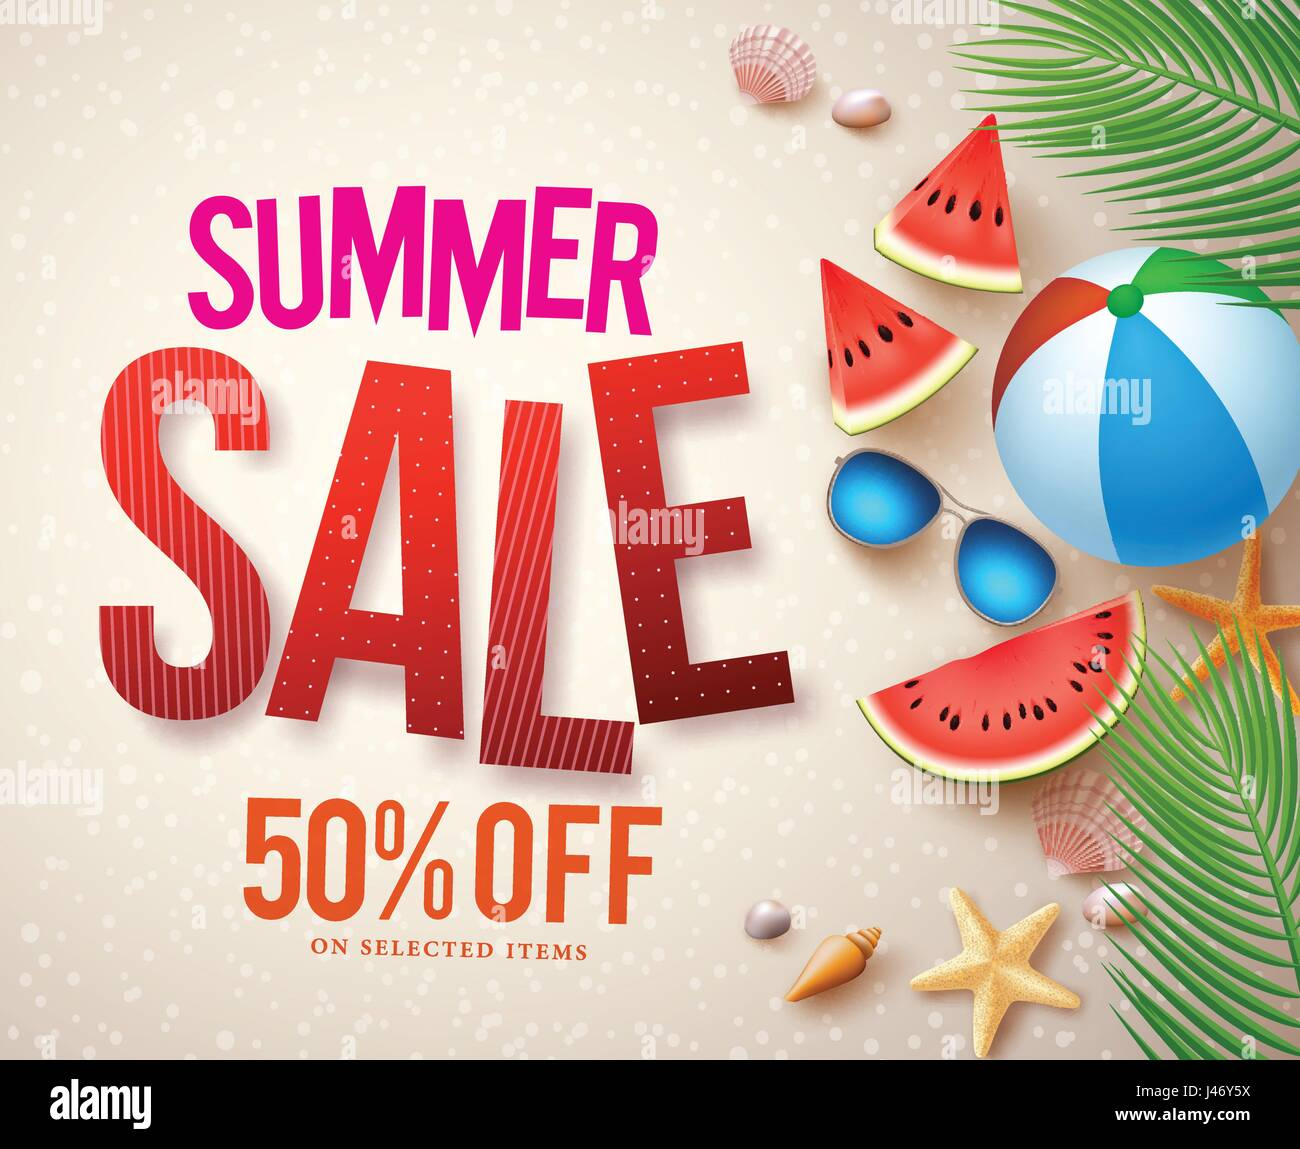 vector summer sale banner design with red sale text and colorful